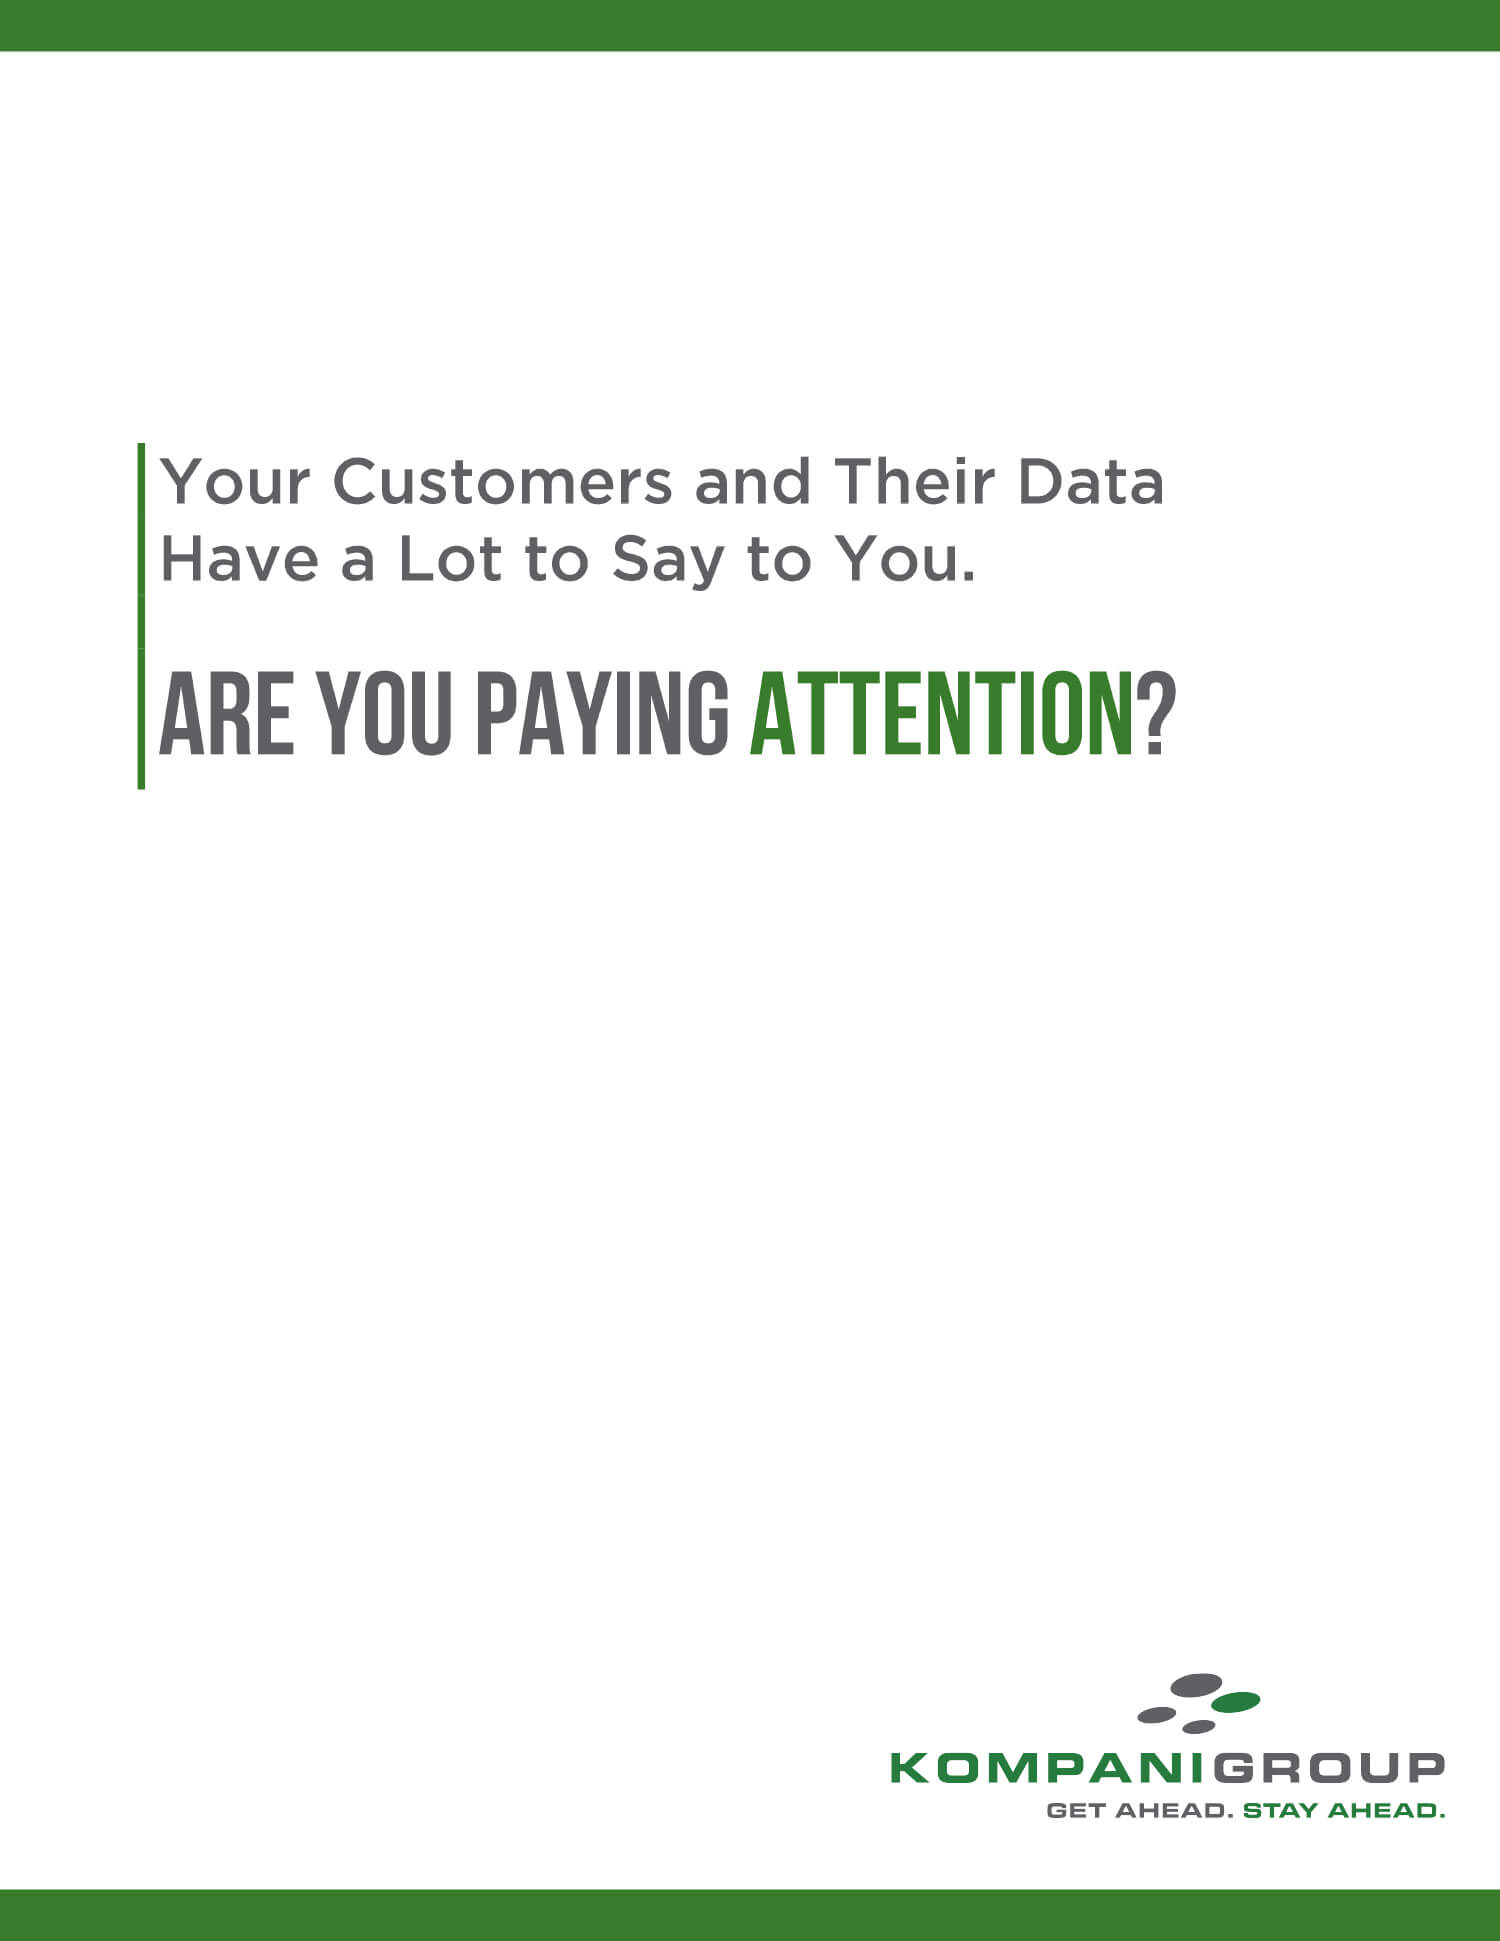 Kompani Group Data driven marketing ebook